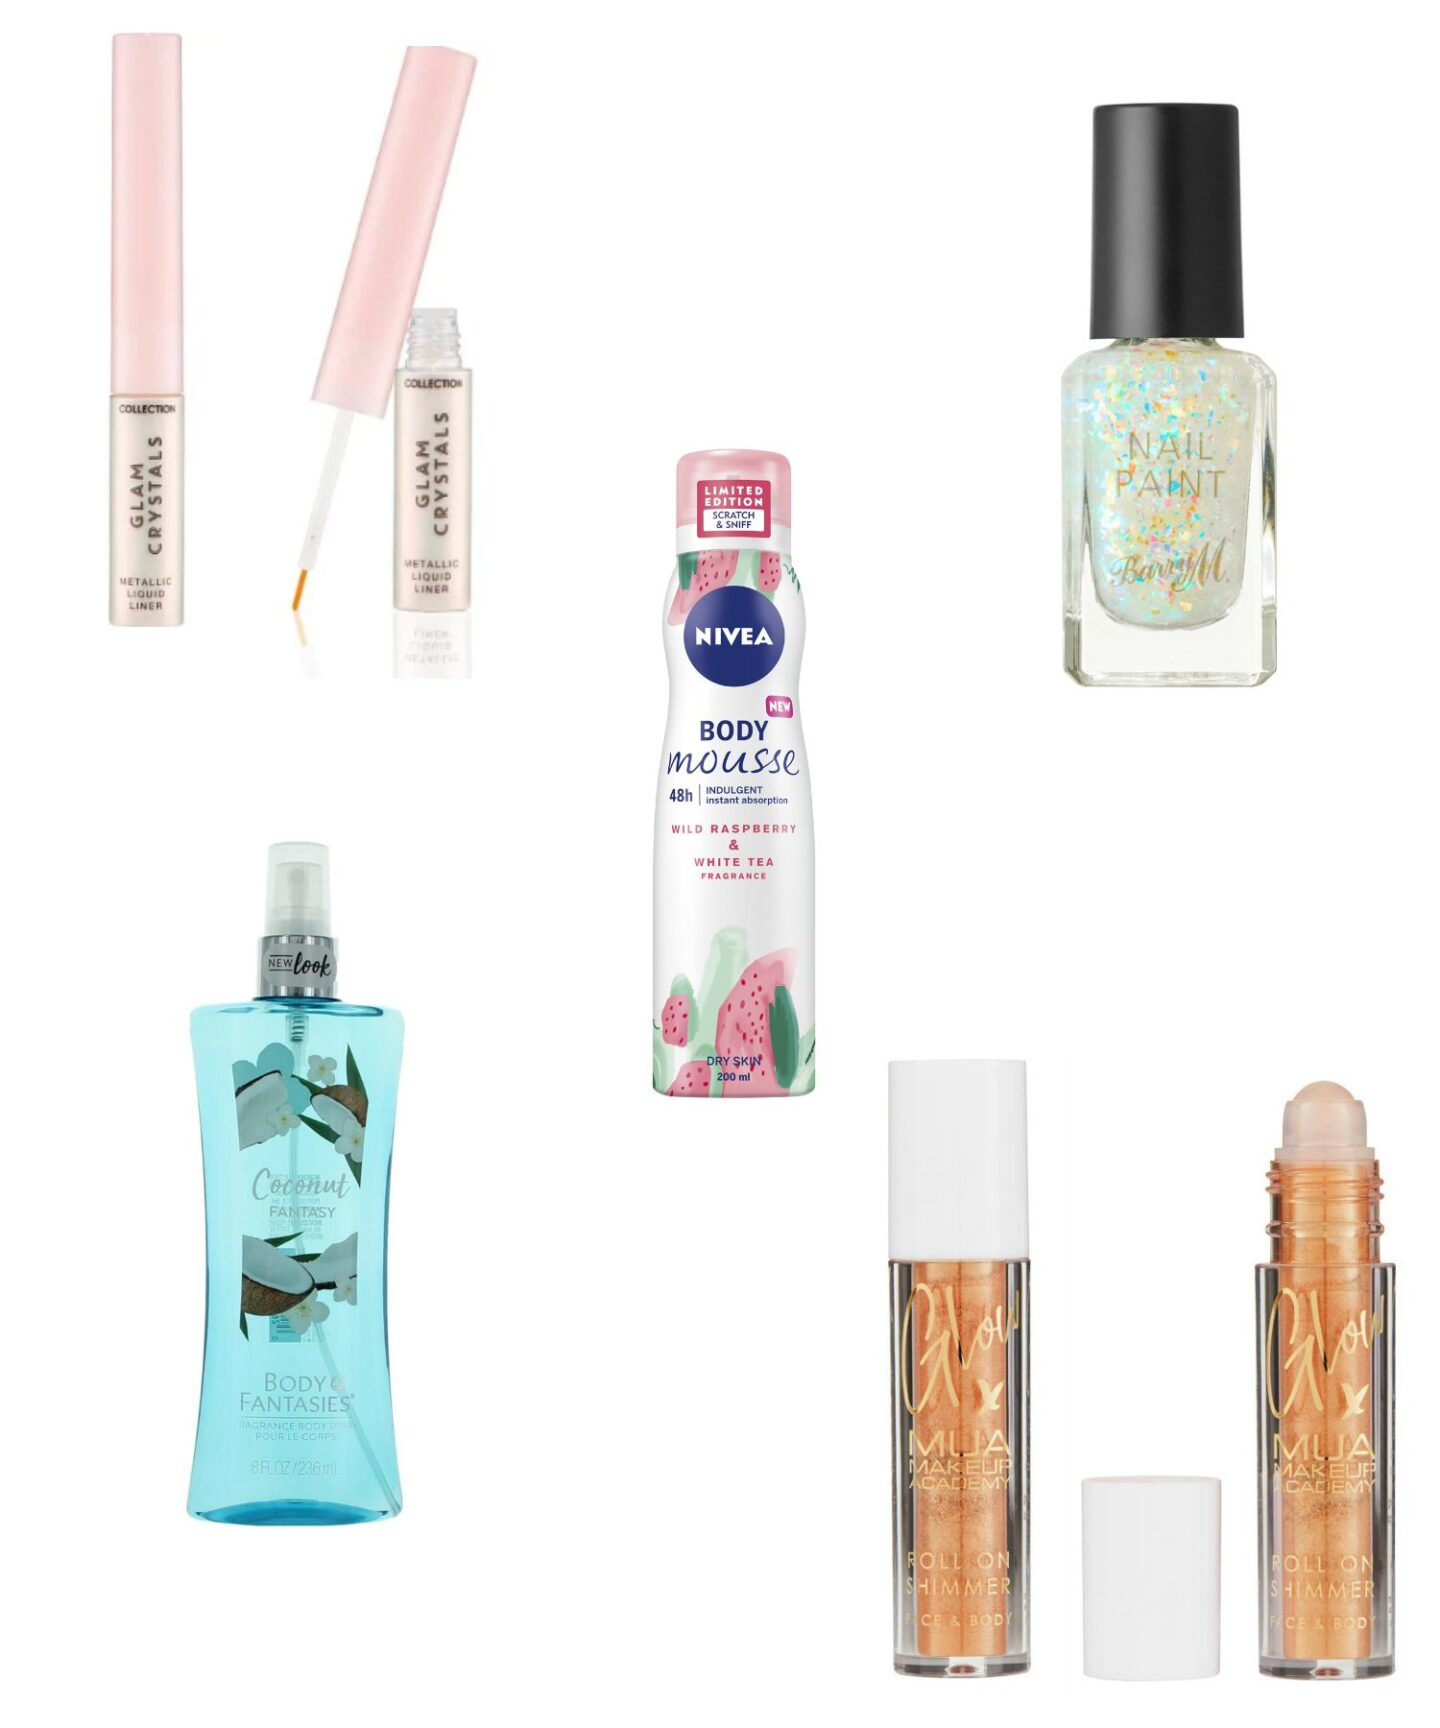 Five New Beauty Launches Under £5 #3